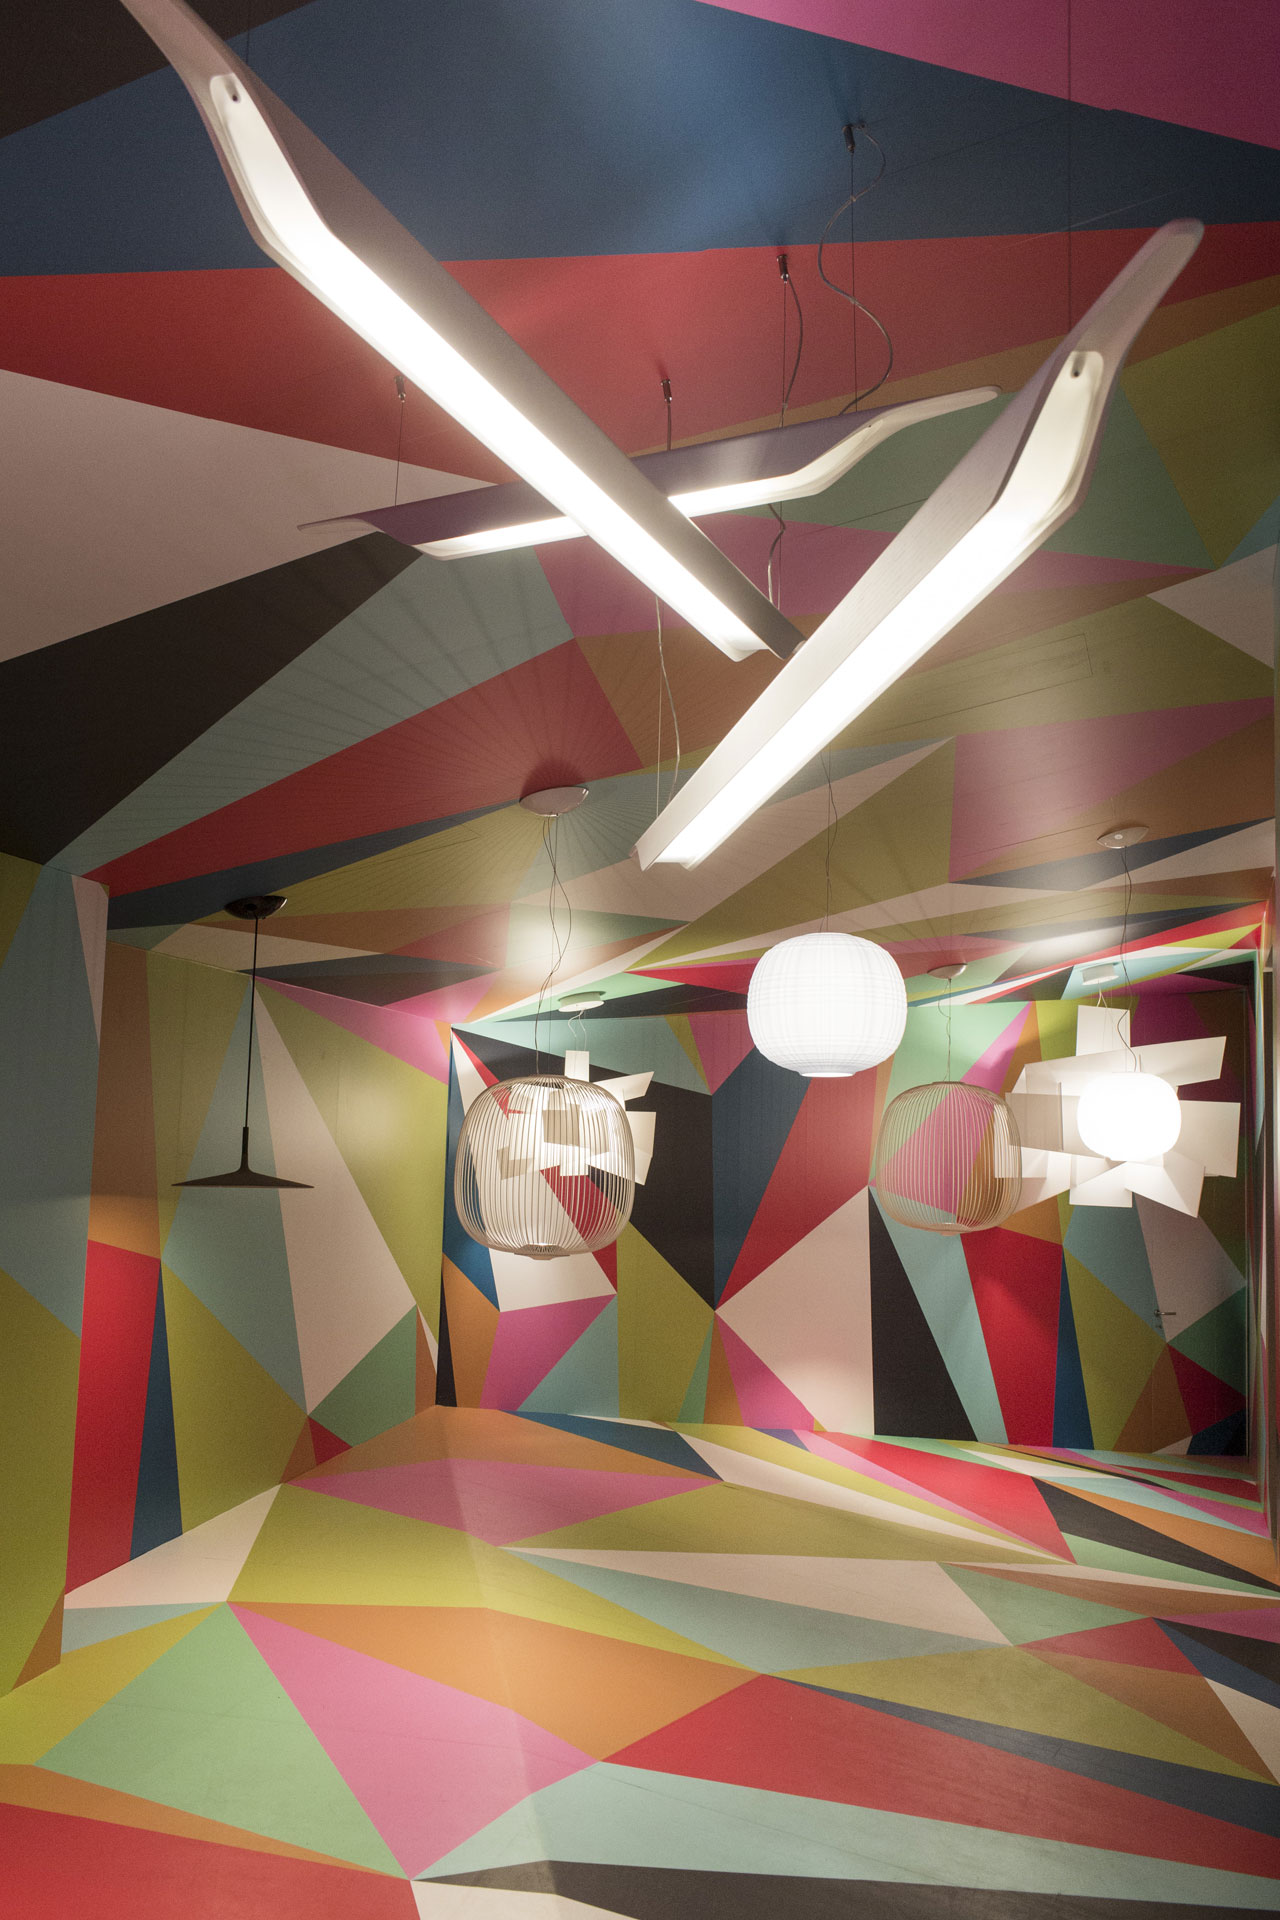 Designer/architect Ferruccio Laviani played with scale in an Alice in Wonderland-like installation of Foscarini lamps and their giant versions.